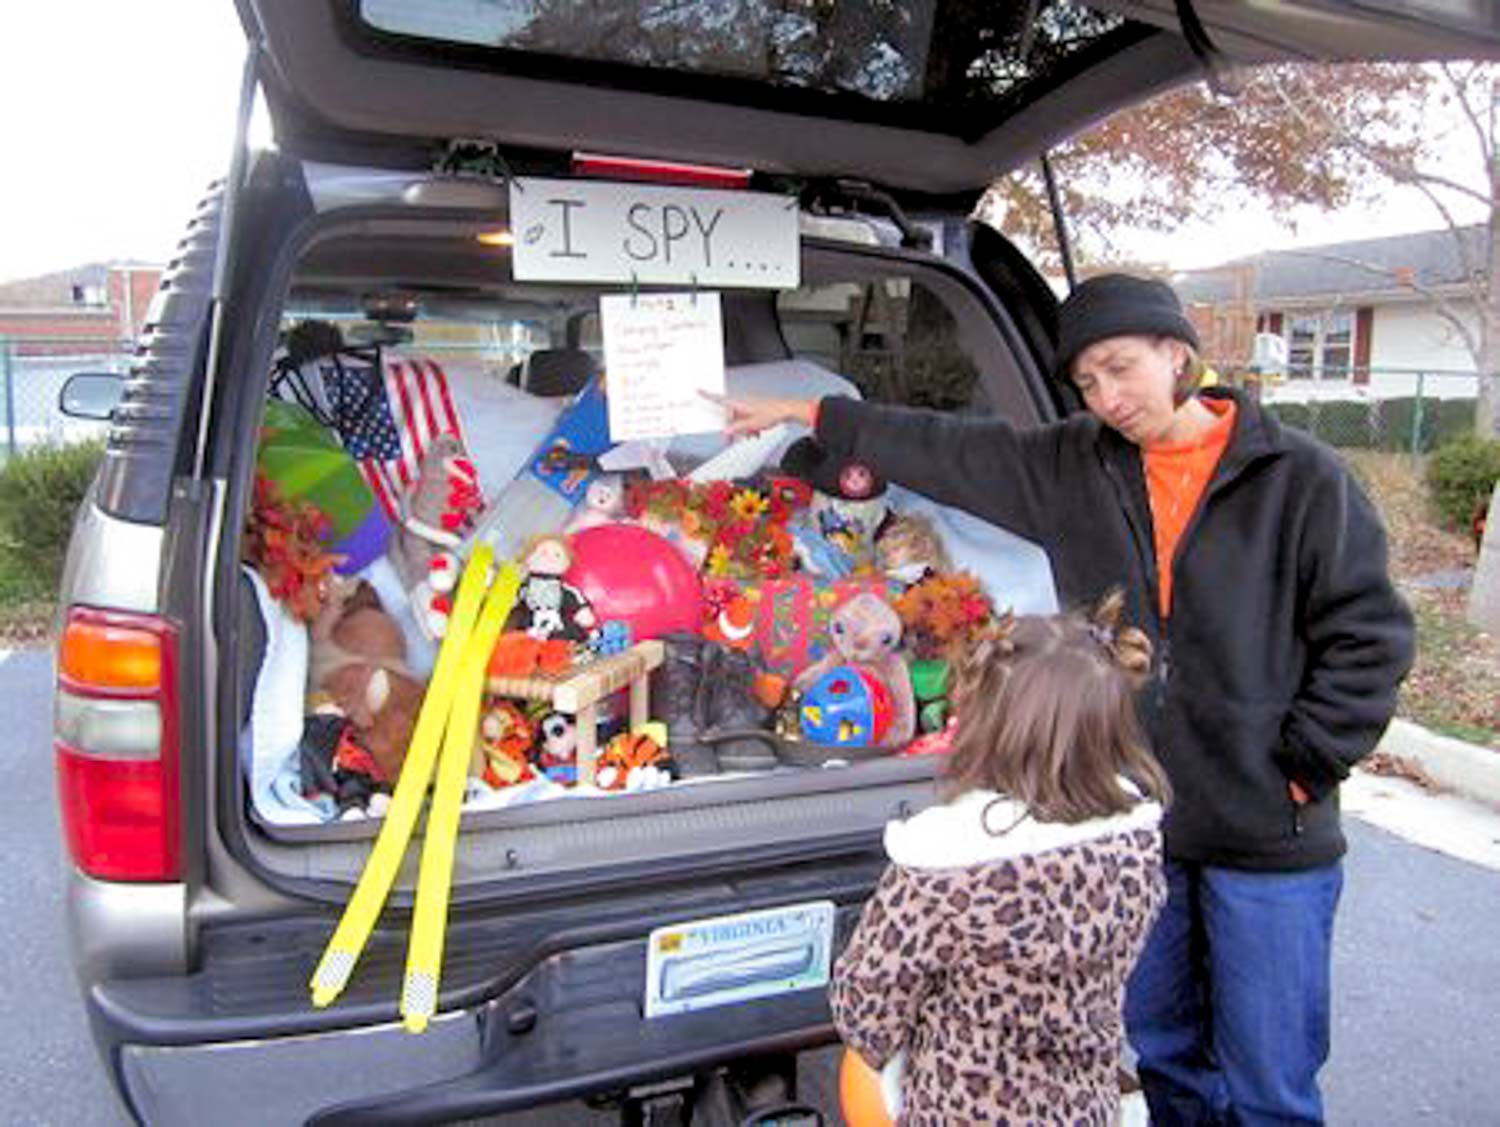 An open SUV truck with stuffed animals in it with a sign saying I Spy with two people looking at it.